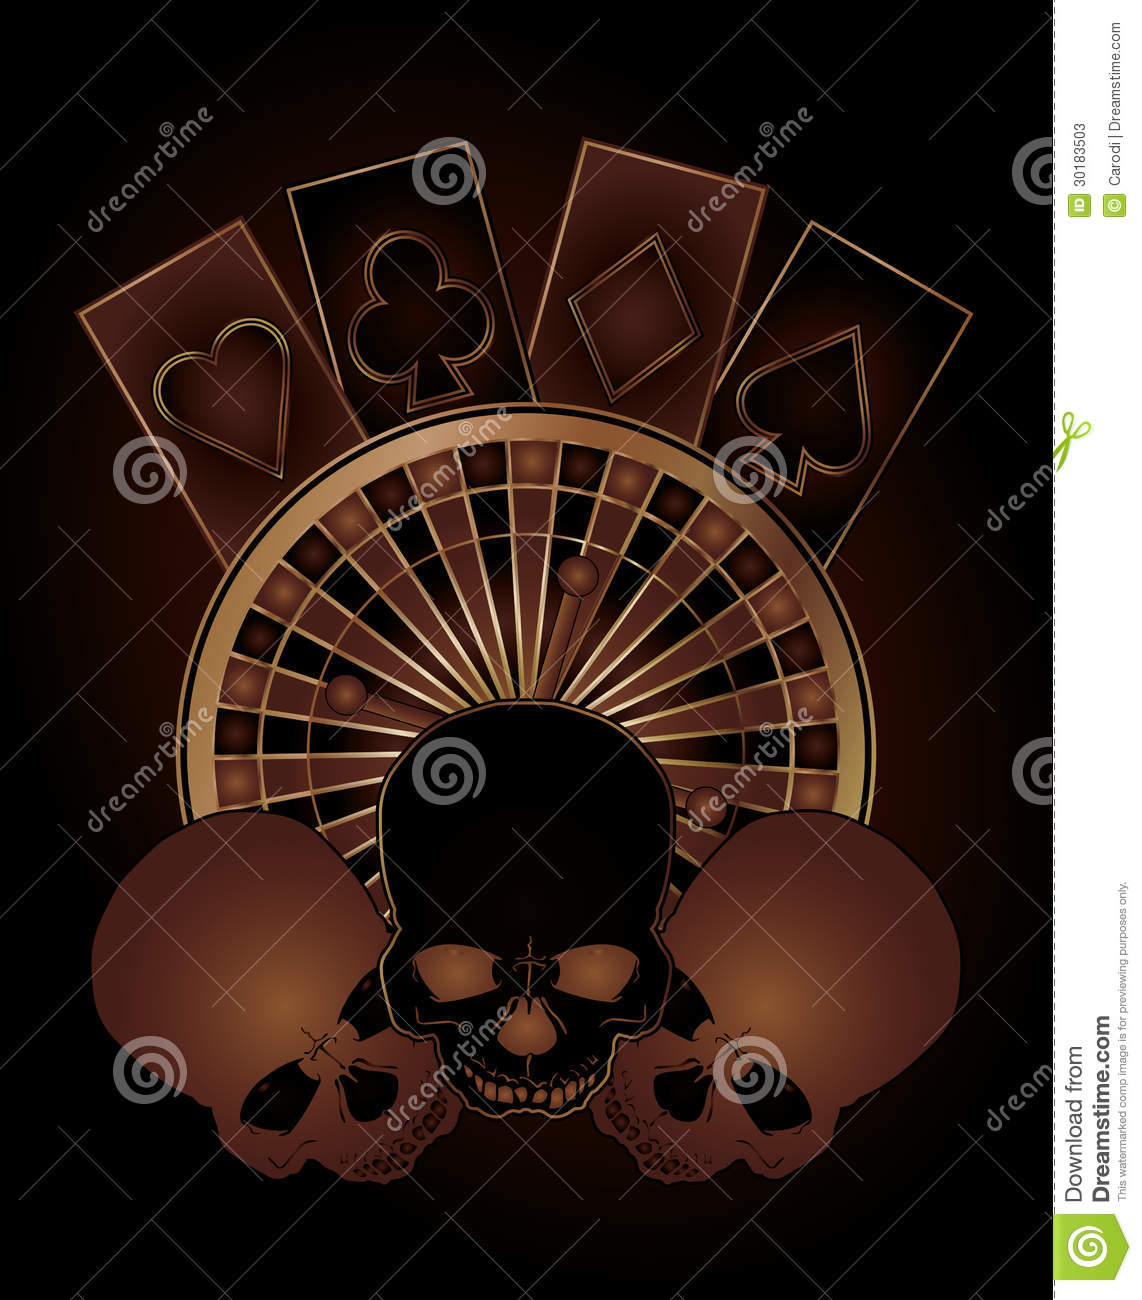 Elements Casino Poker